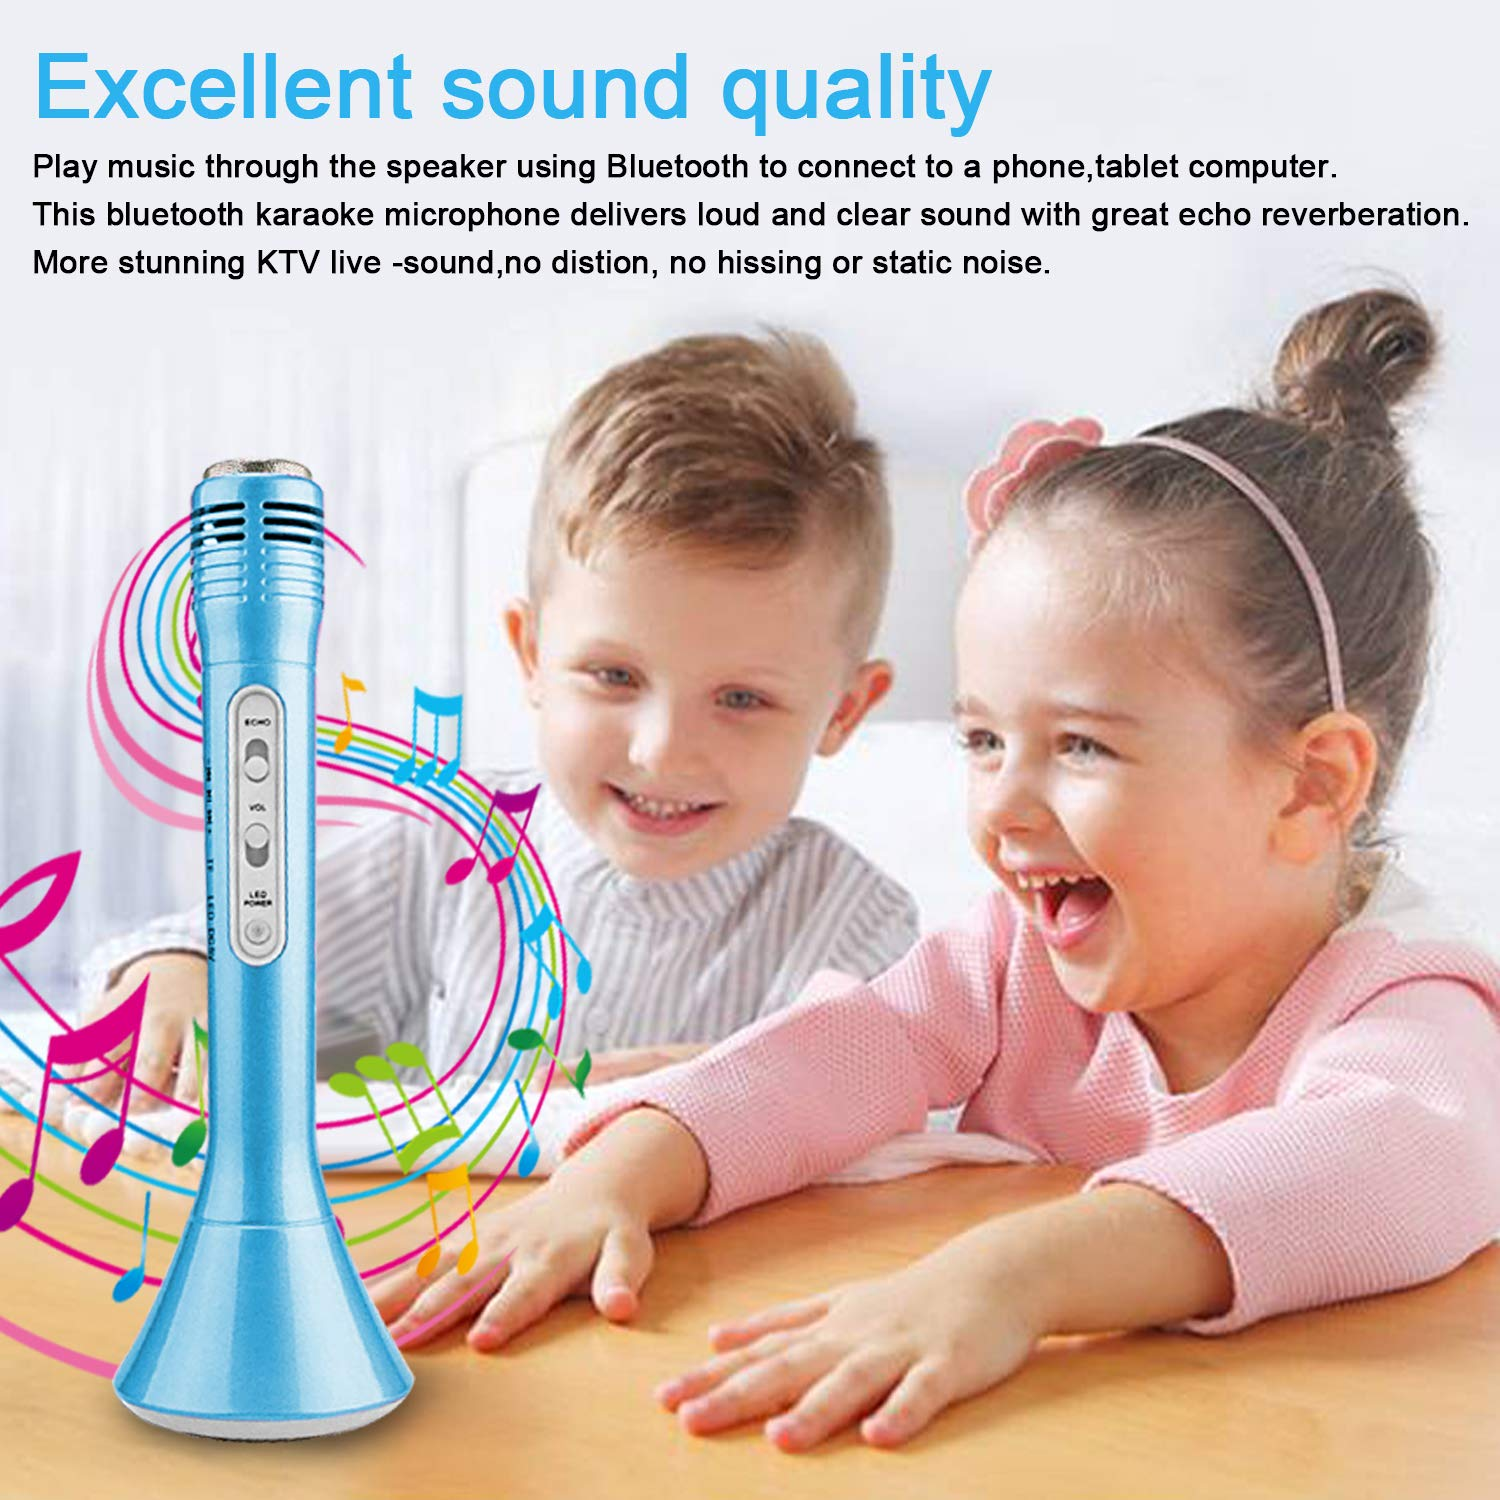 Kids Karaoke Machine Wireless Singing Microphone with Bluetooth Speaker Colorful LED Lights Handheld Portable Music Playing Toys  for Girls Boys Home Party KTV Xmas Birthday Gifts Andriod iOS PC iPad by Santery (Image #2)